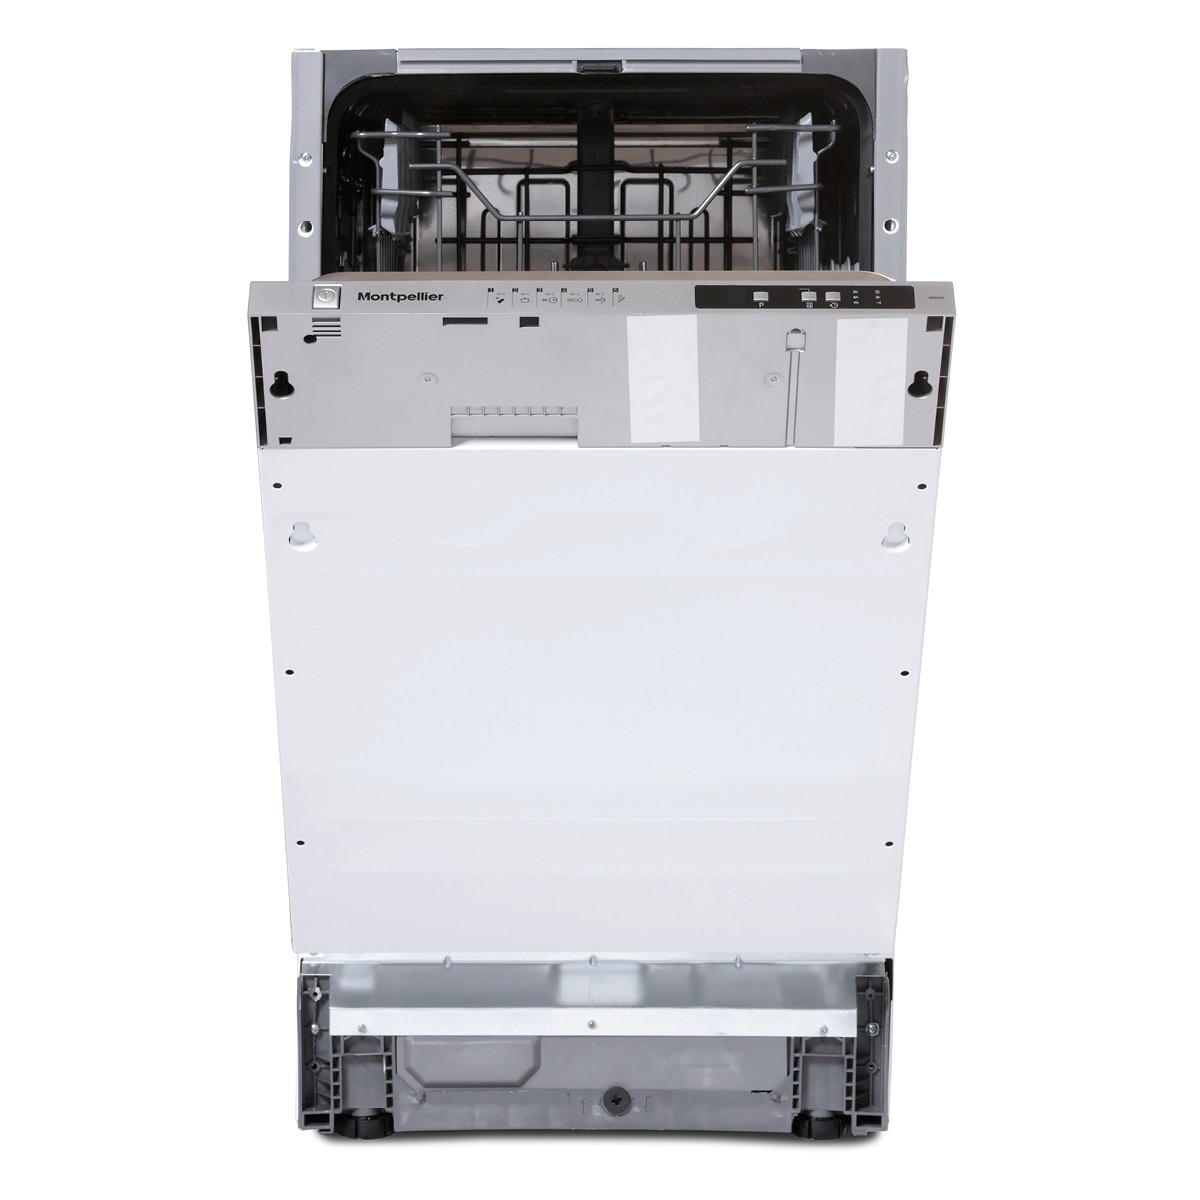 Montpellier MDI455 Slim Line Dishwasher